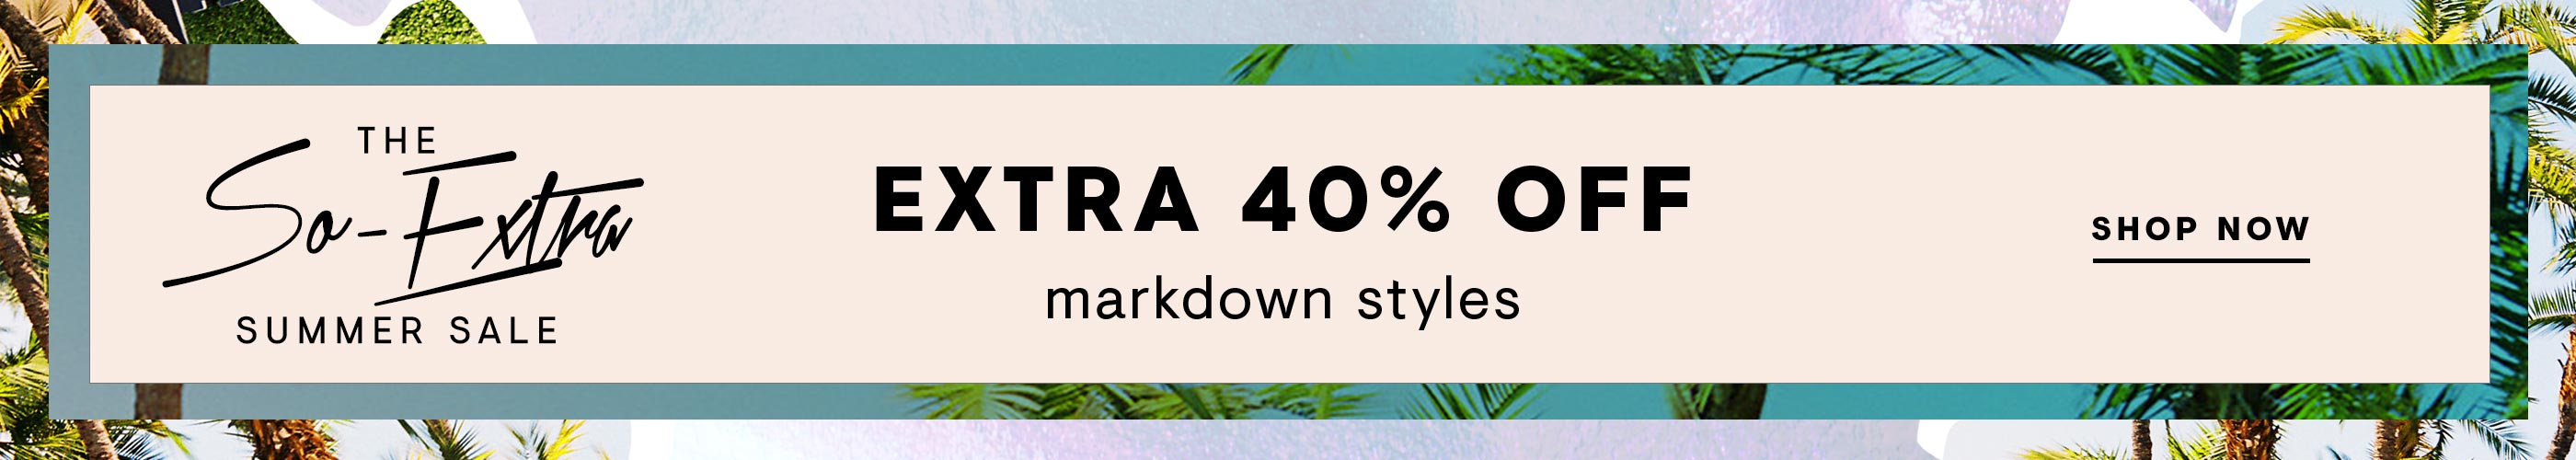 The So-Extra Summer Sale: Extra 40% Off Markdowns: Shop Now